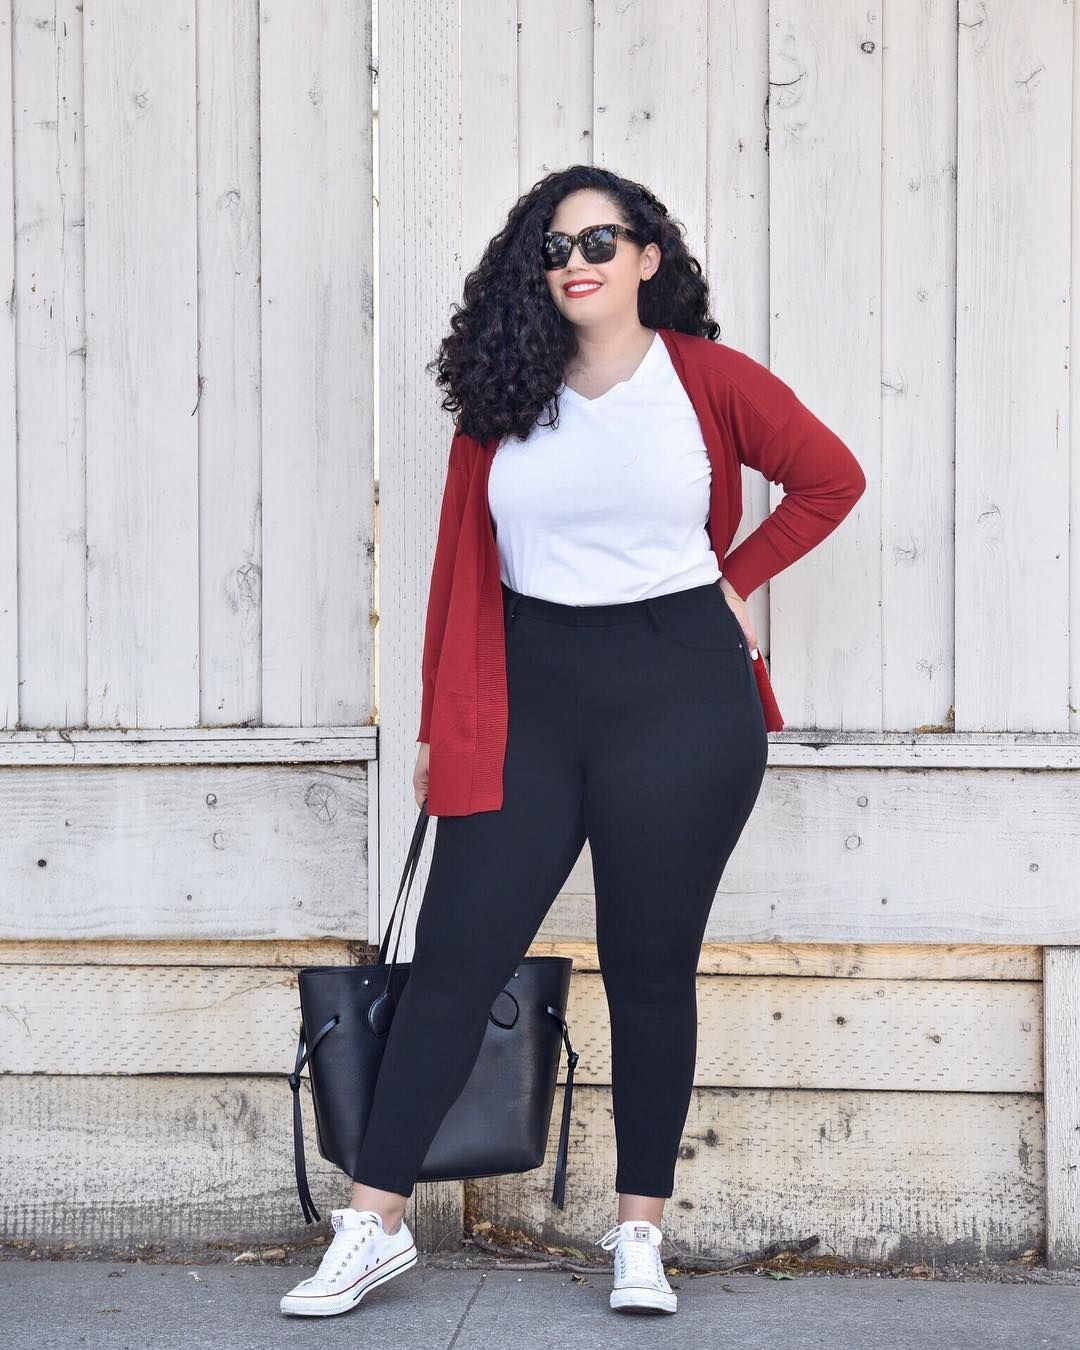 """Photo of Tanesha Awasthi on Instagram: """"I'm a firm believer that you don't have to break the bank to look + feel amazing, especially when it comes to your clothing. Often times,…"""""""